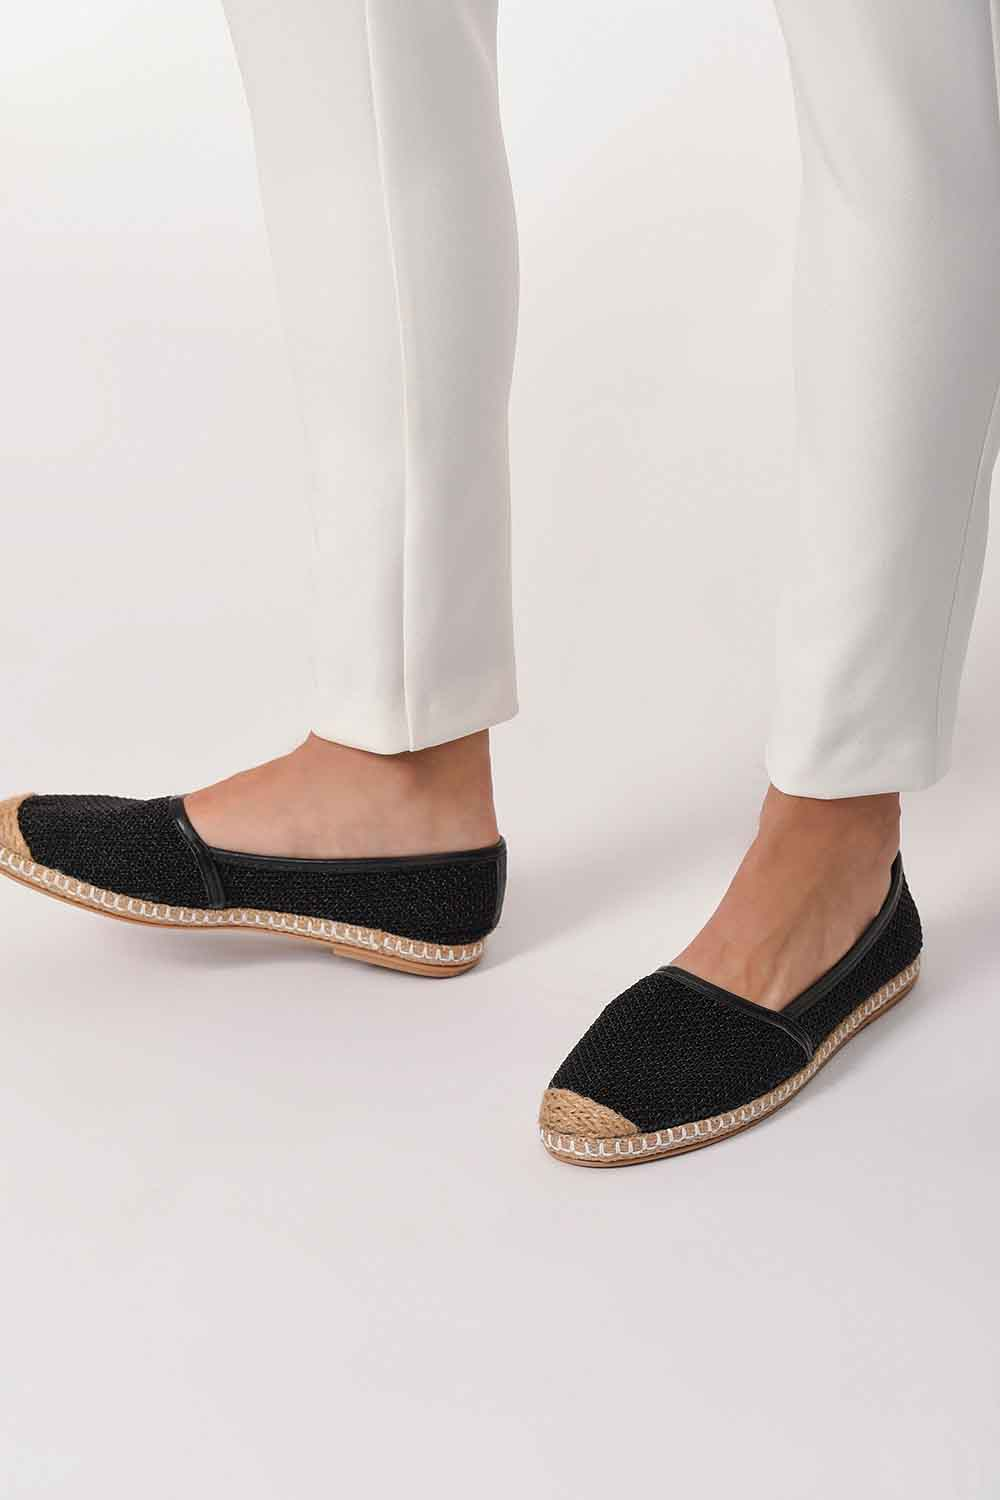 MIZALLE Braided Espadrille (Black) (1)